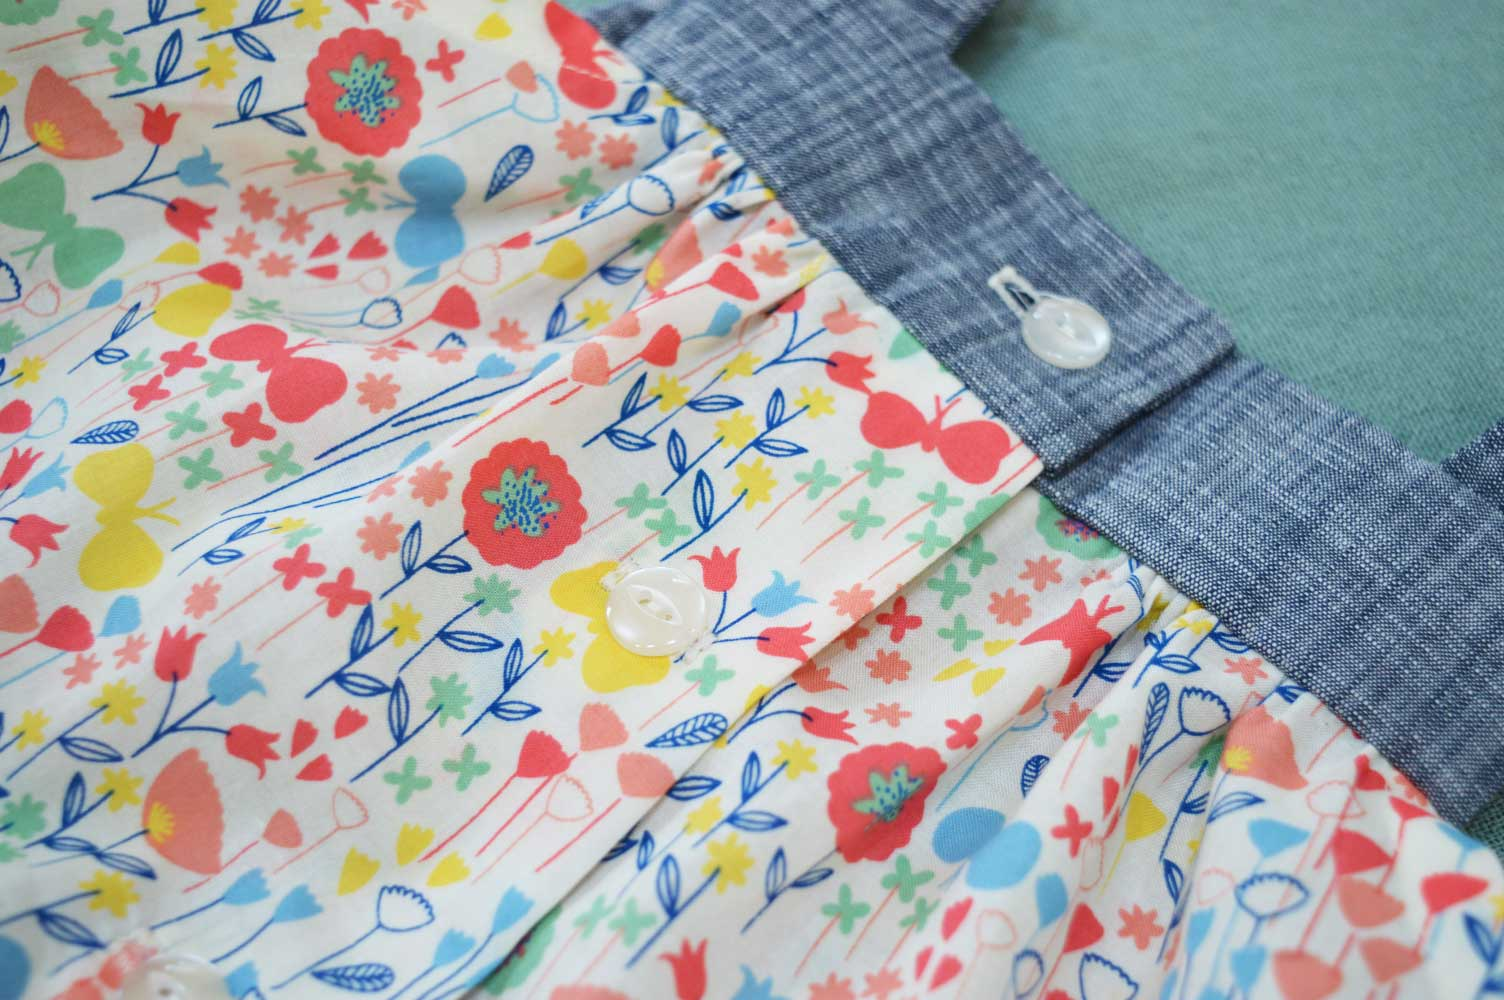 Holm Sown: Kwik Sew K3776 Baby Romper in London Calling Cotton Lawn - Back button placket